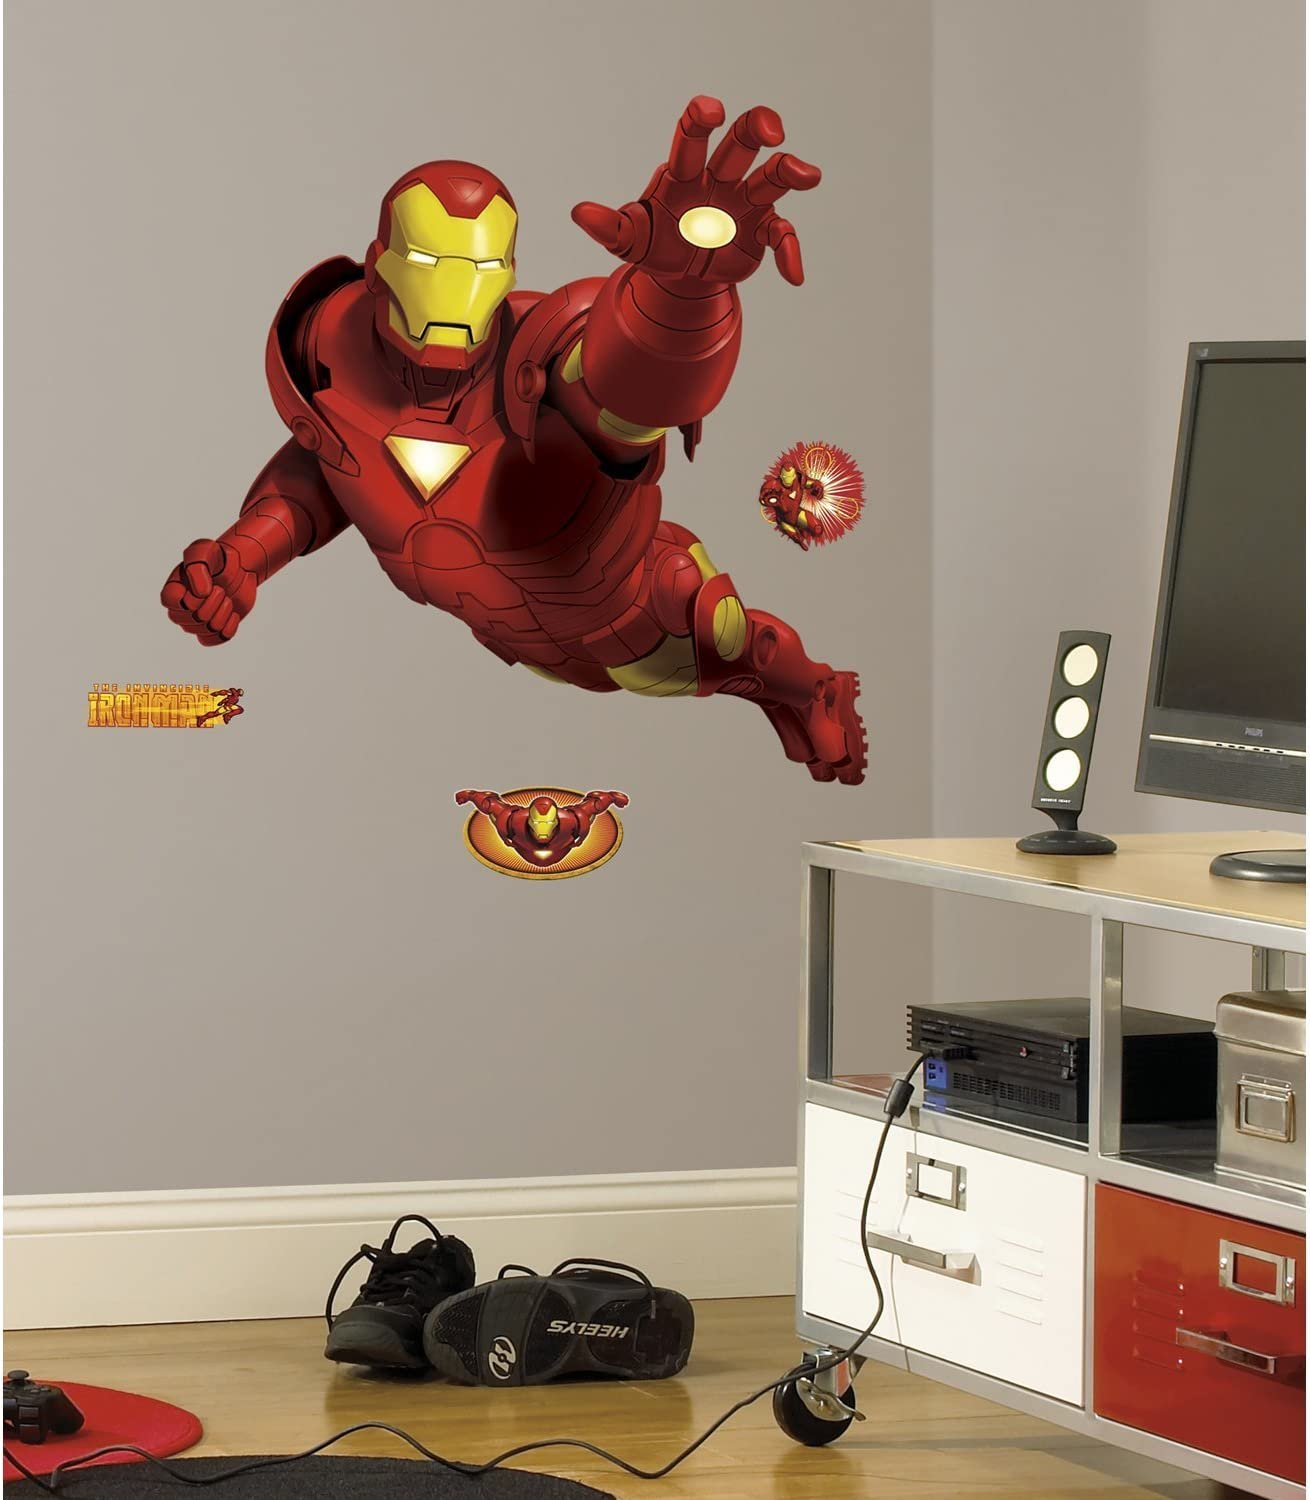 Pre-cut Peel and Stick Sticker Decor Party Decaration Disney Marvel 6110207 Tony Stark Iron Man Giant Wall Decal Marvel Superhero Comic